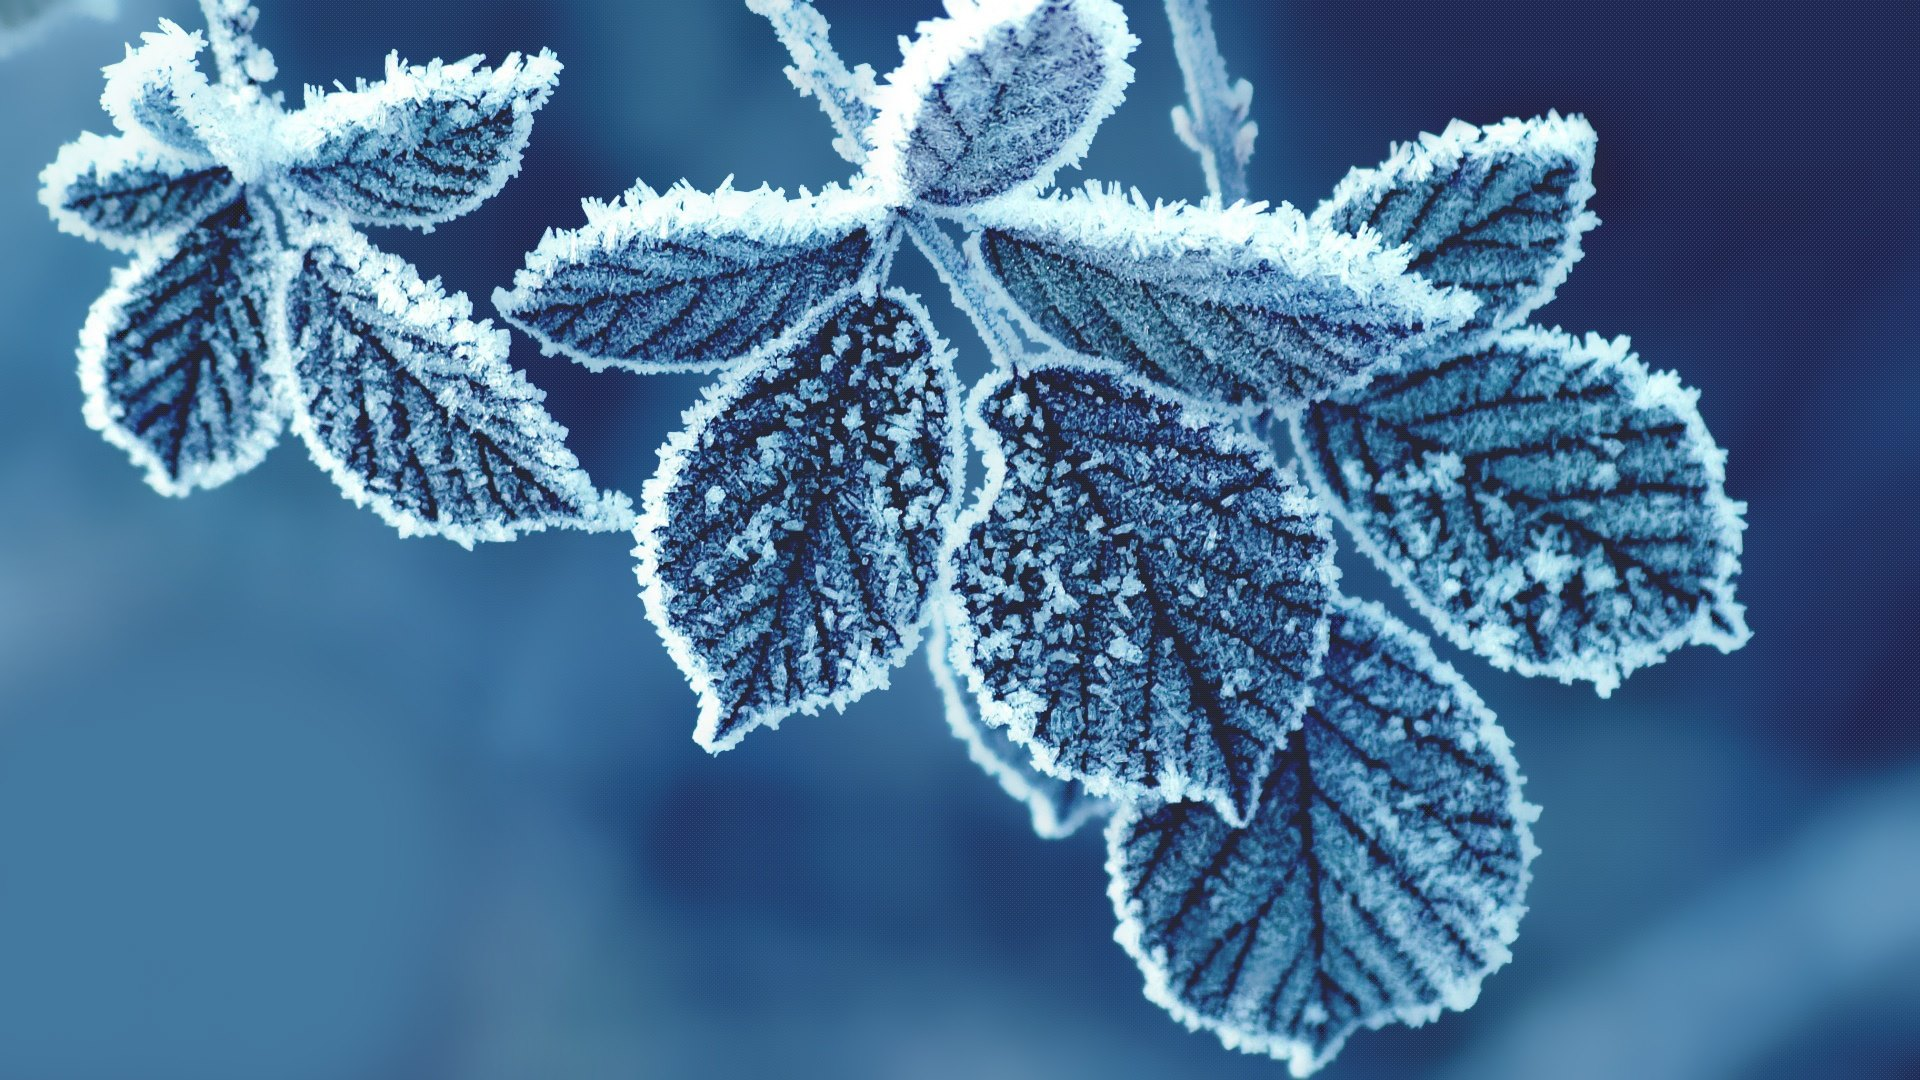 Snow on Leaf Wallpaper | Nature HD wallpapers